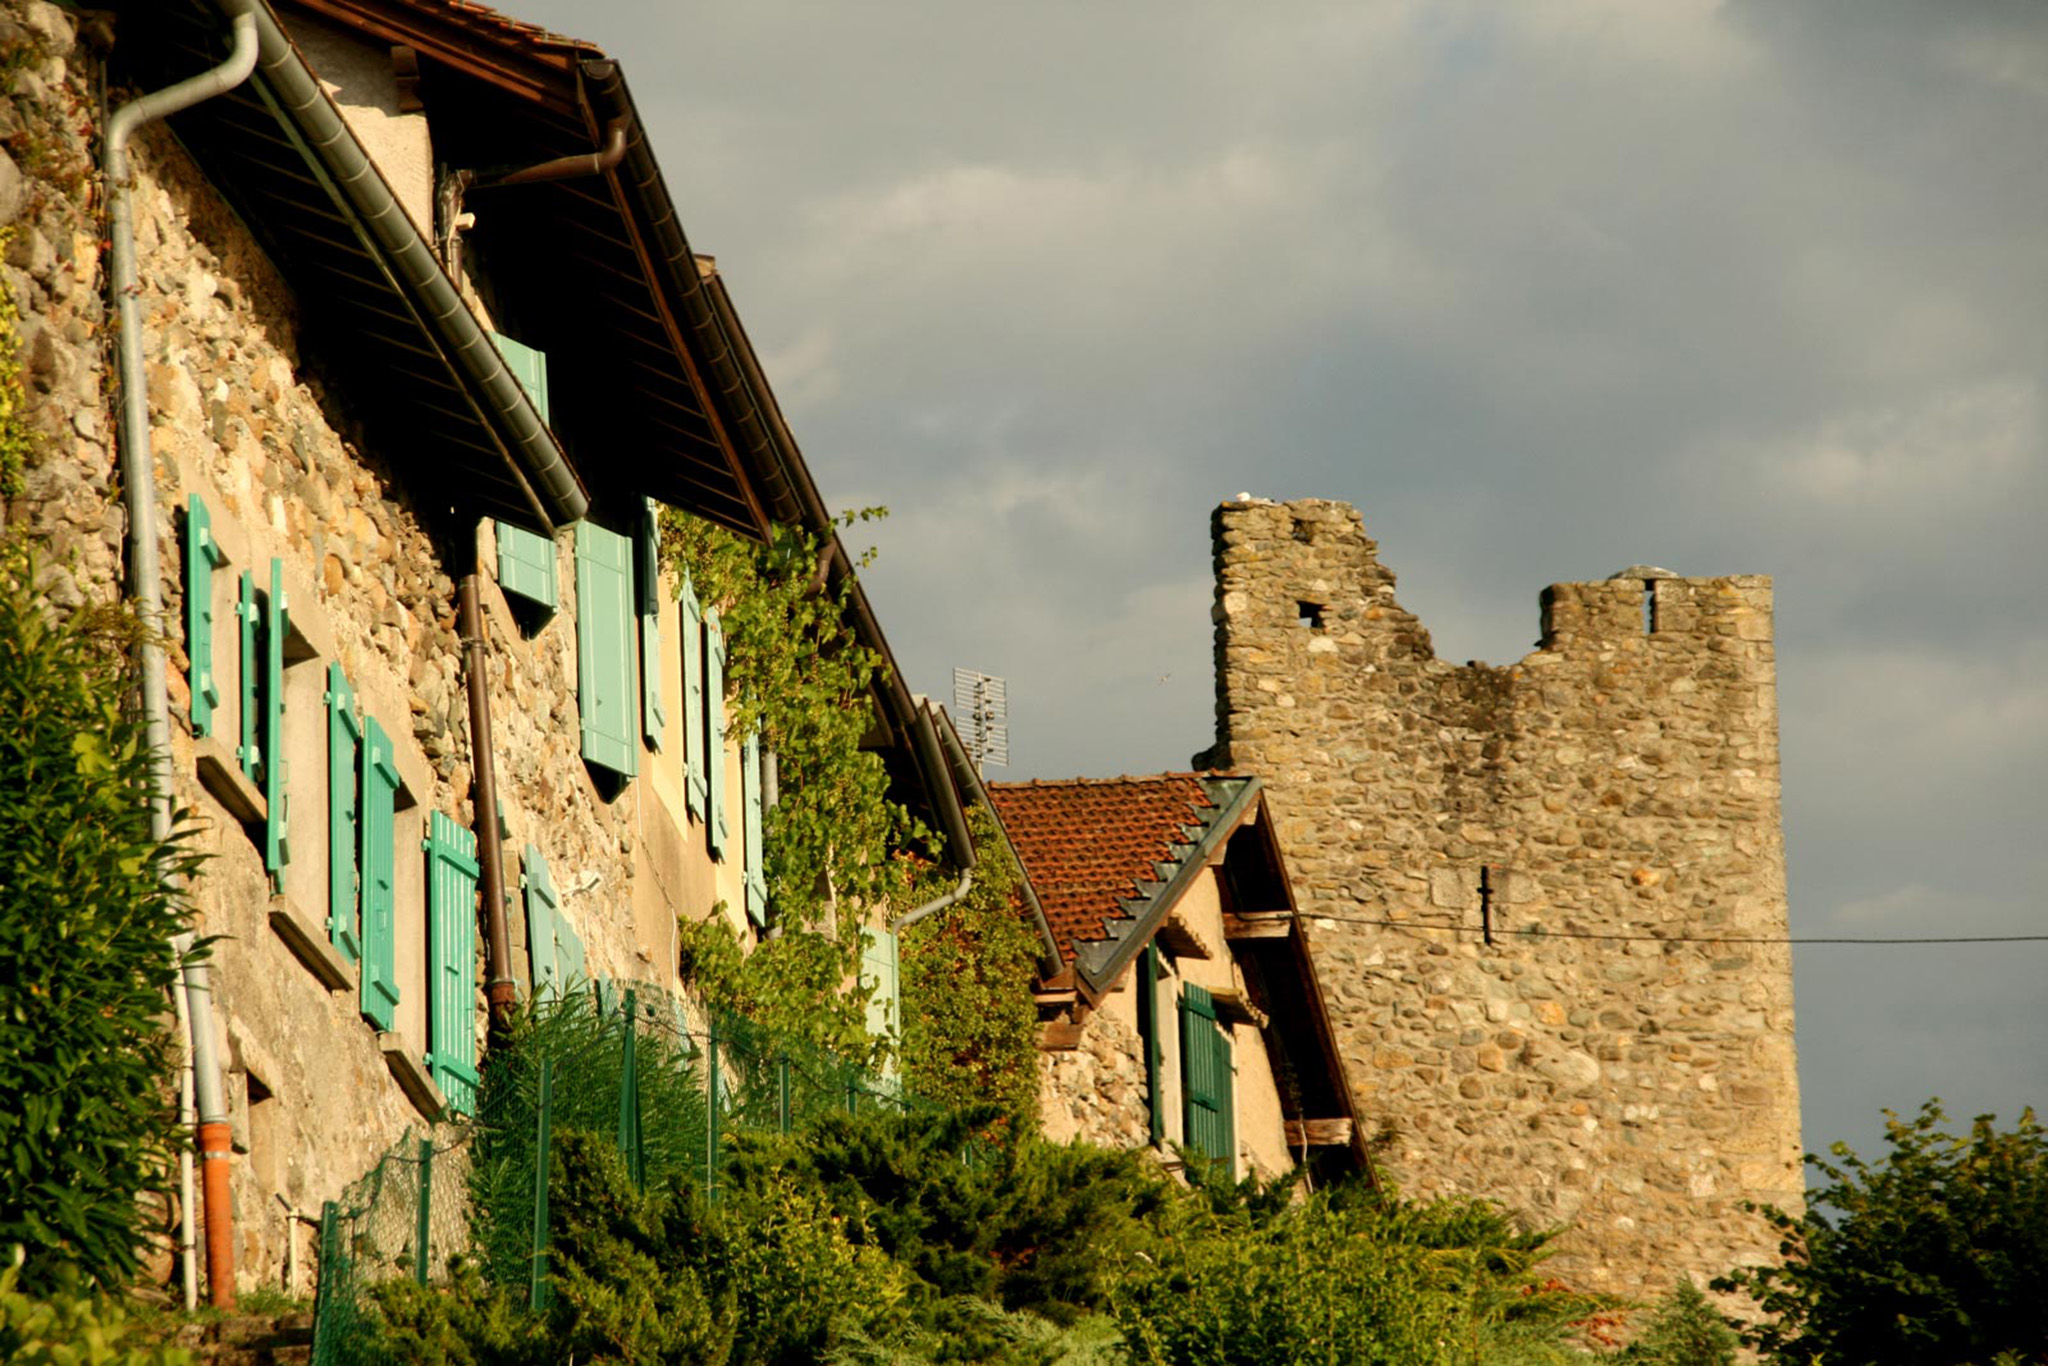 kt_2020_380_Keytours_excursions_Swisstours_yvoire_fortified_medieval_village1_2048_10